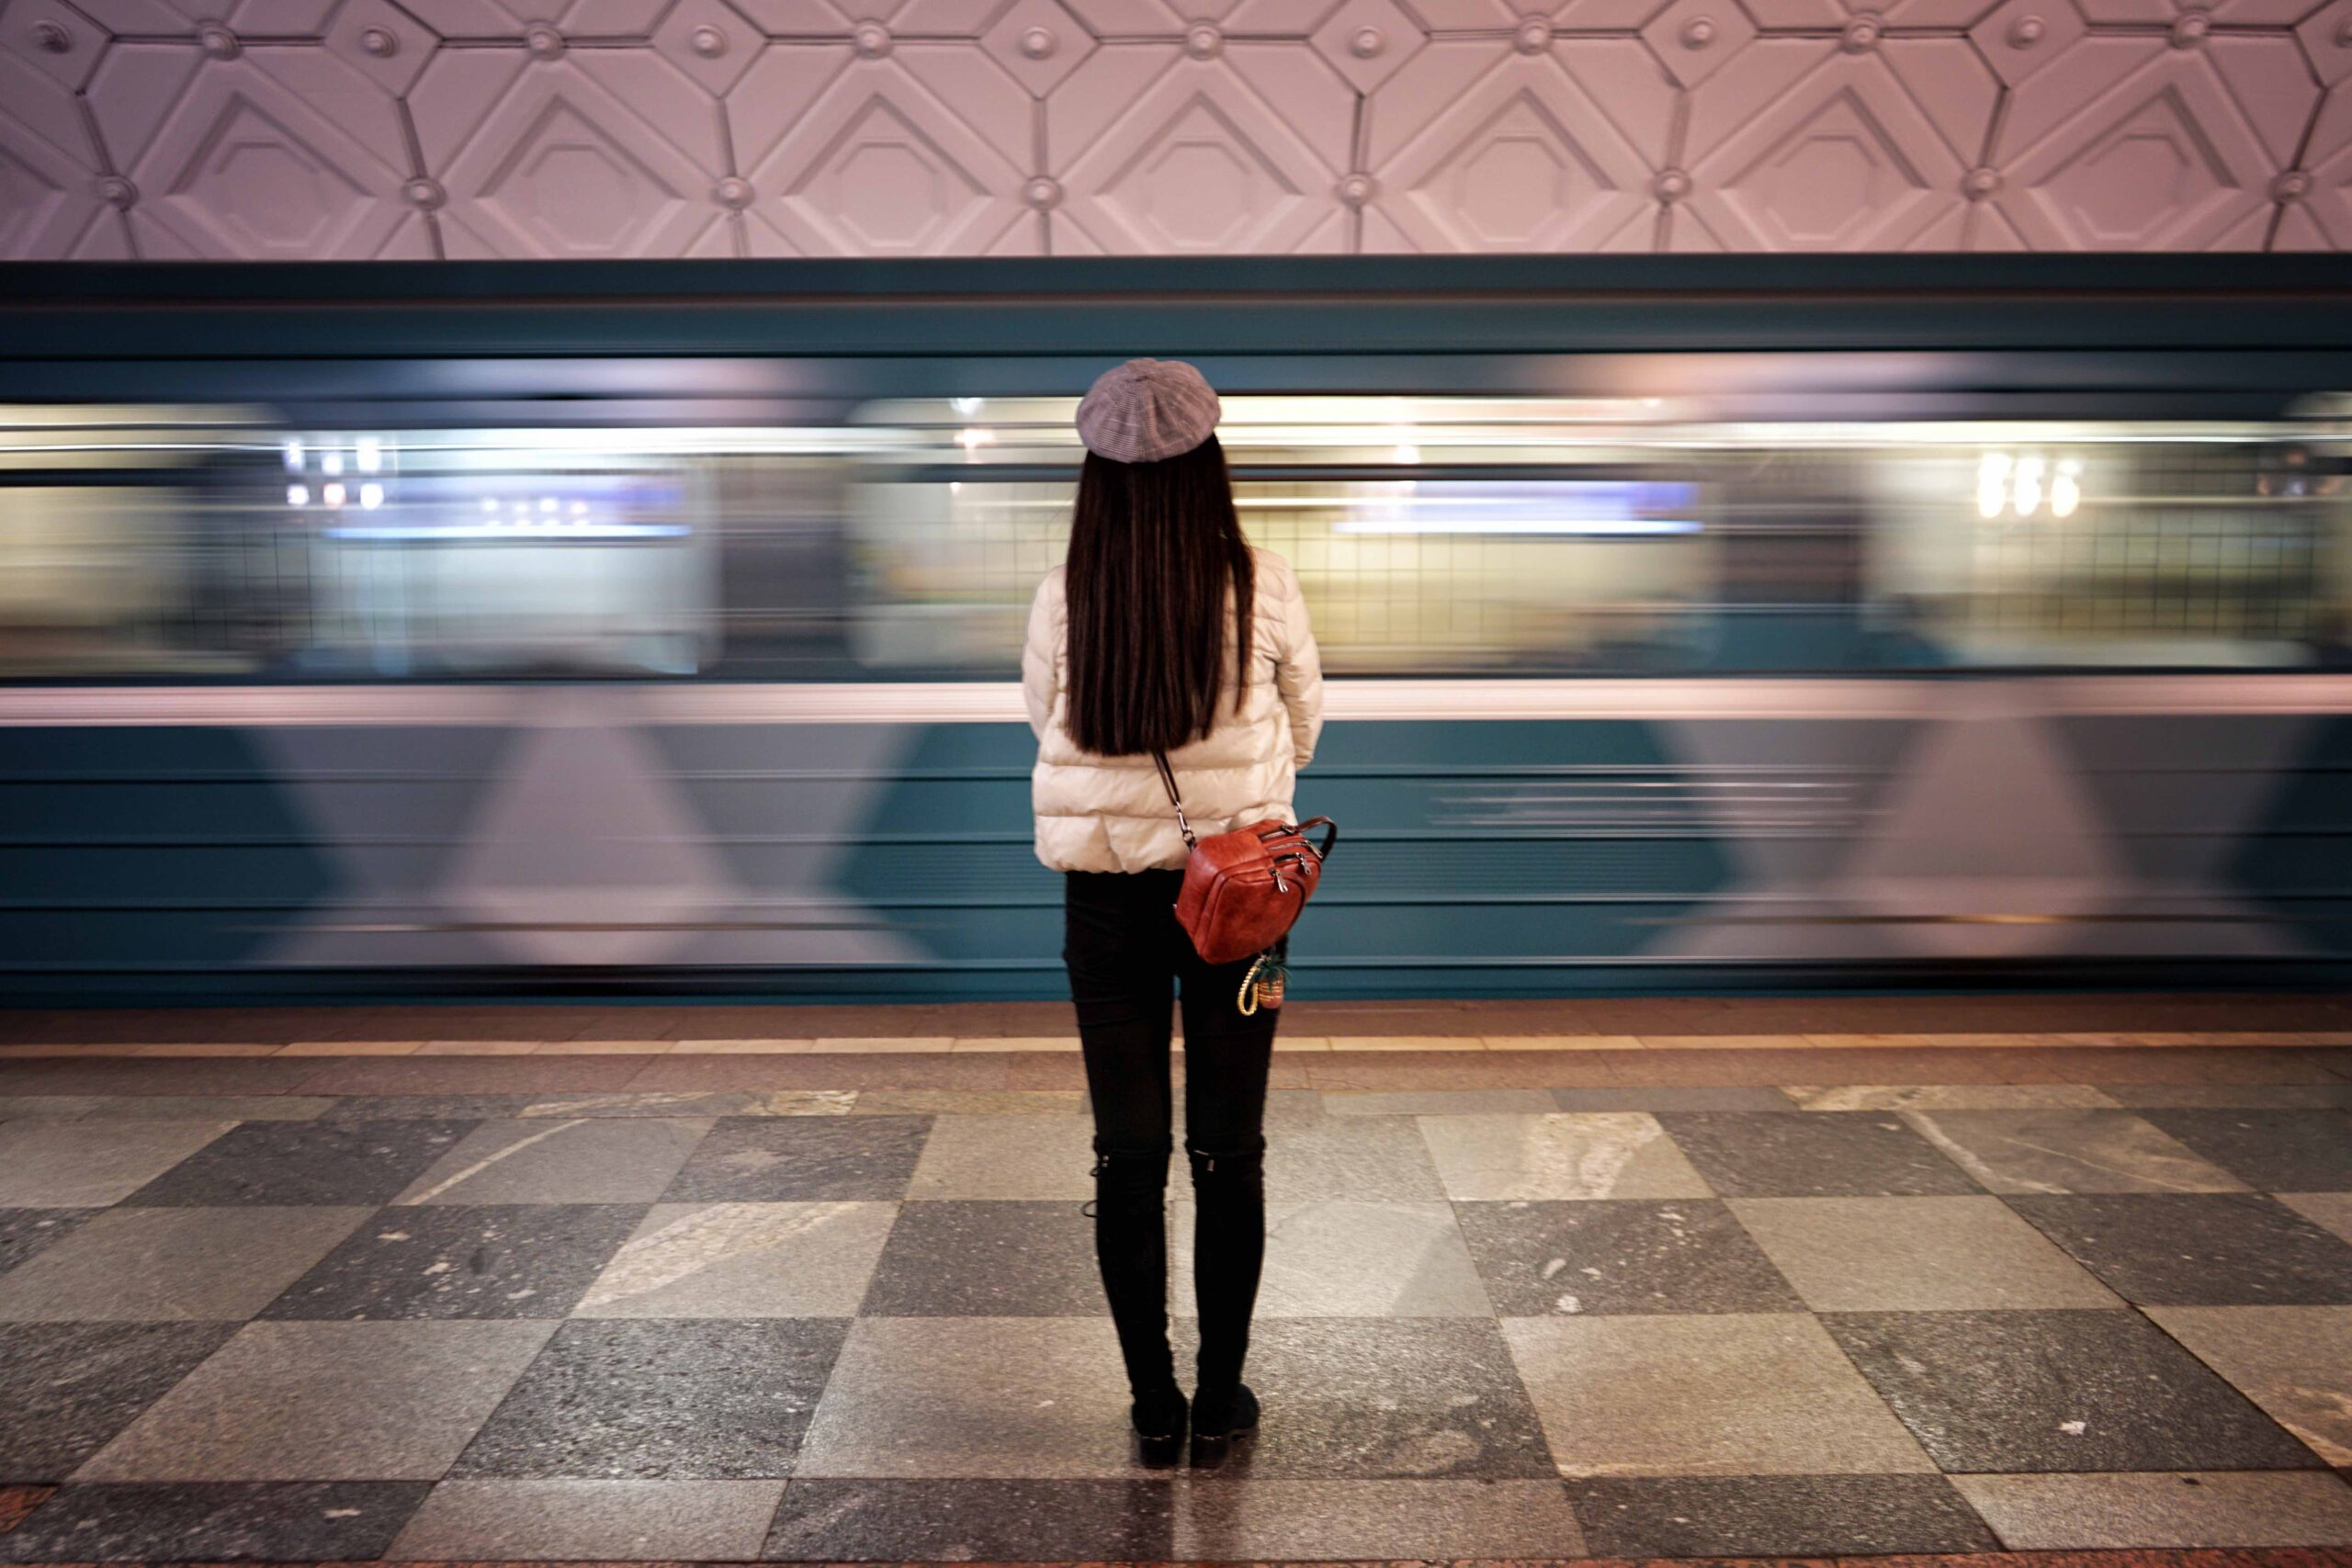 train whizzing by a woman at the station